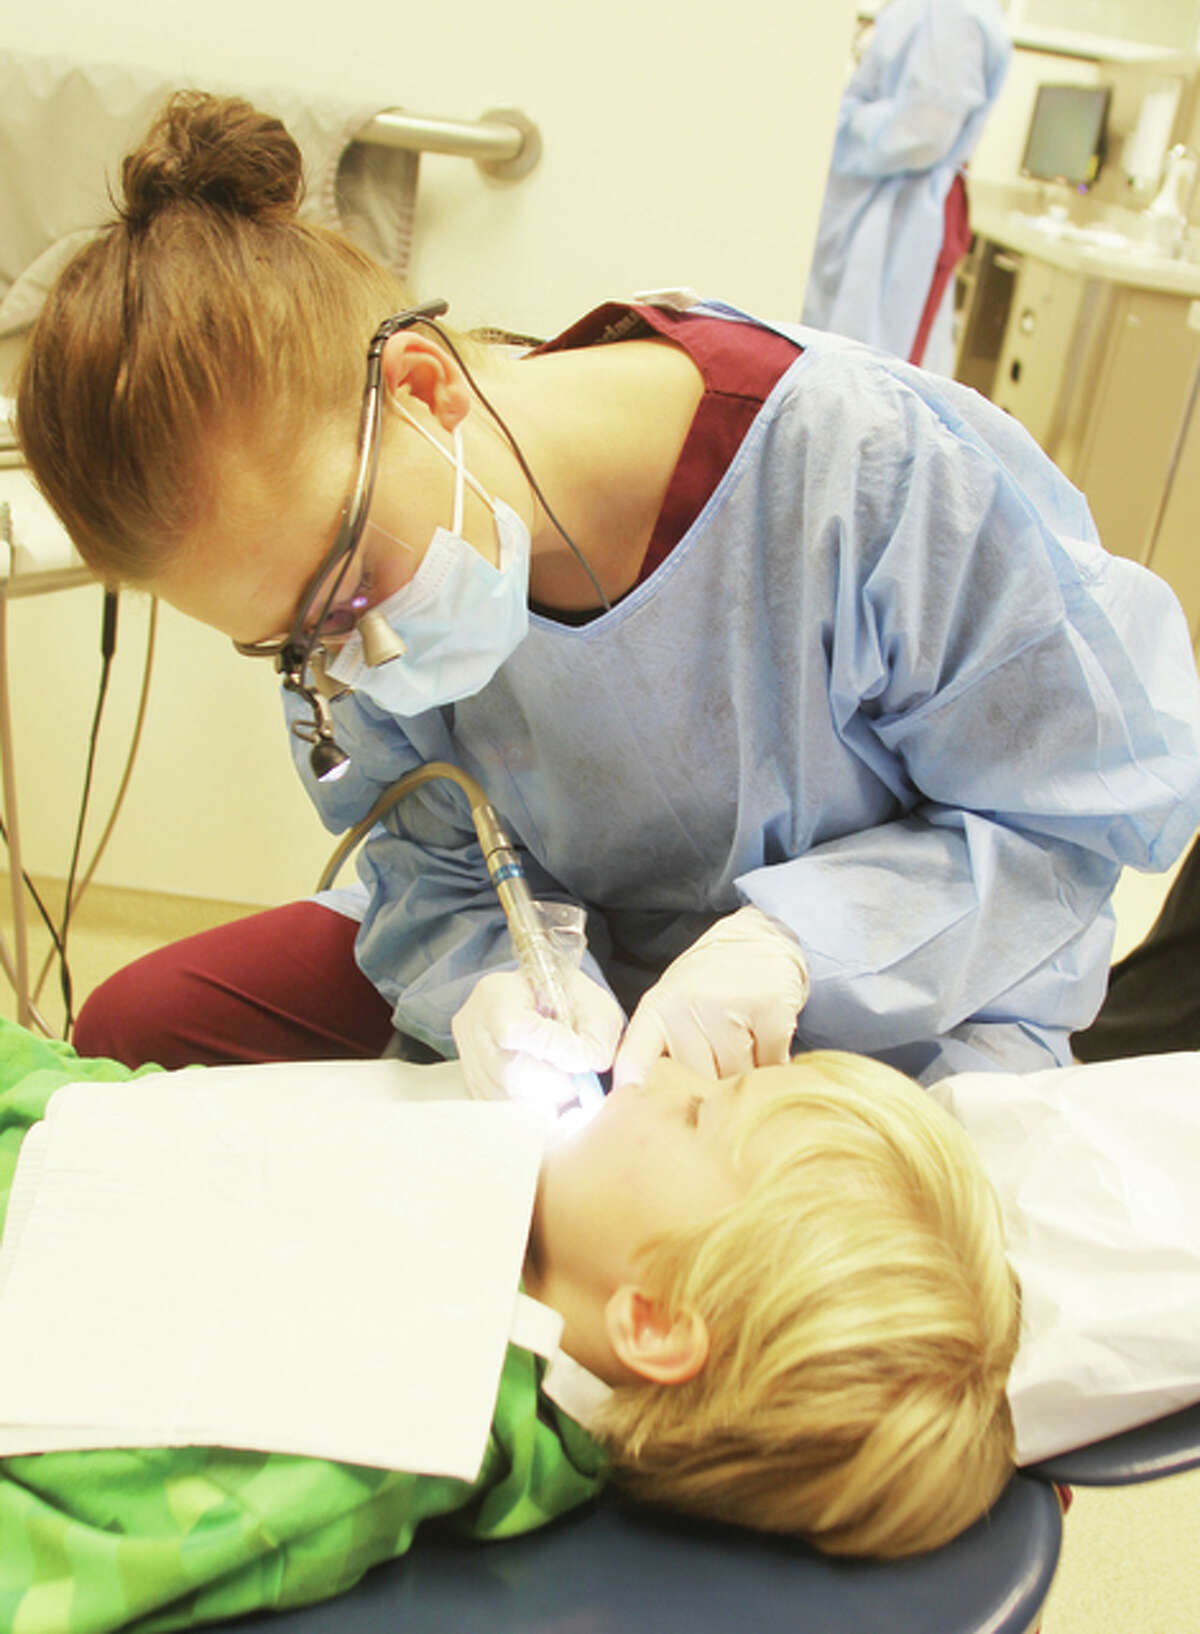 Lewis and Clark Community College dental hygiene student Samantha Swigonski, of Edwardsville, cleans Ty Inman's teeth Monday at the annual Give Kids a Smile Day at Southern Illinois University School of Dental Medicine in Alton. More than 400 volunteers help to provide free dental care to approximately 300 children from around the Metro East.